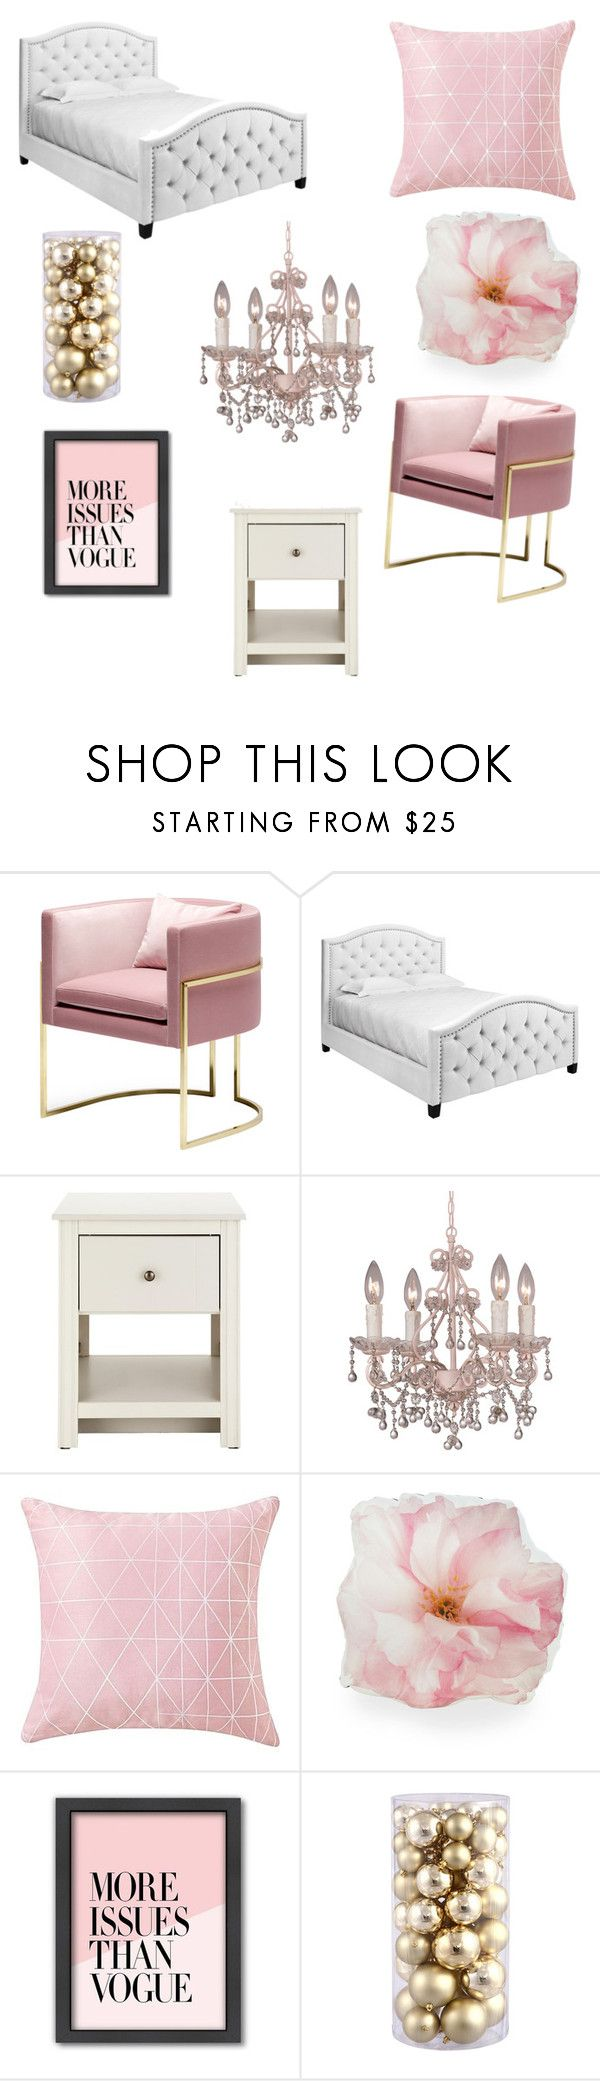 Modern Girly By Xxskittlesothxx Liked On Polyvore Featuring Interior Interiors Interior